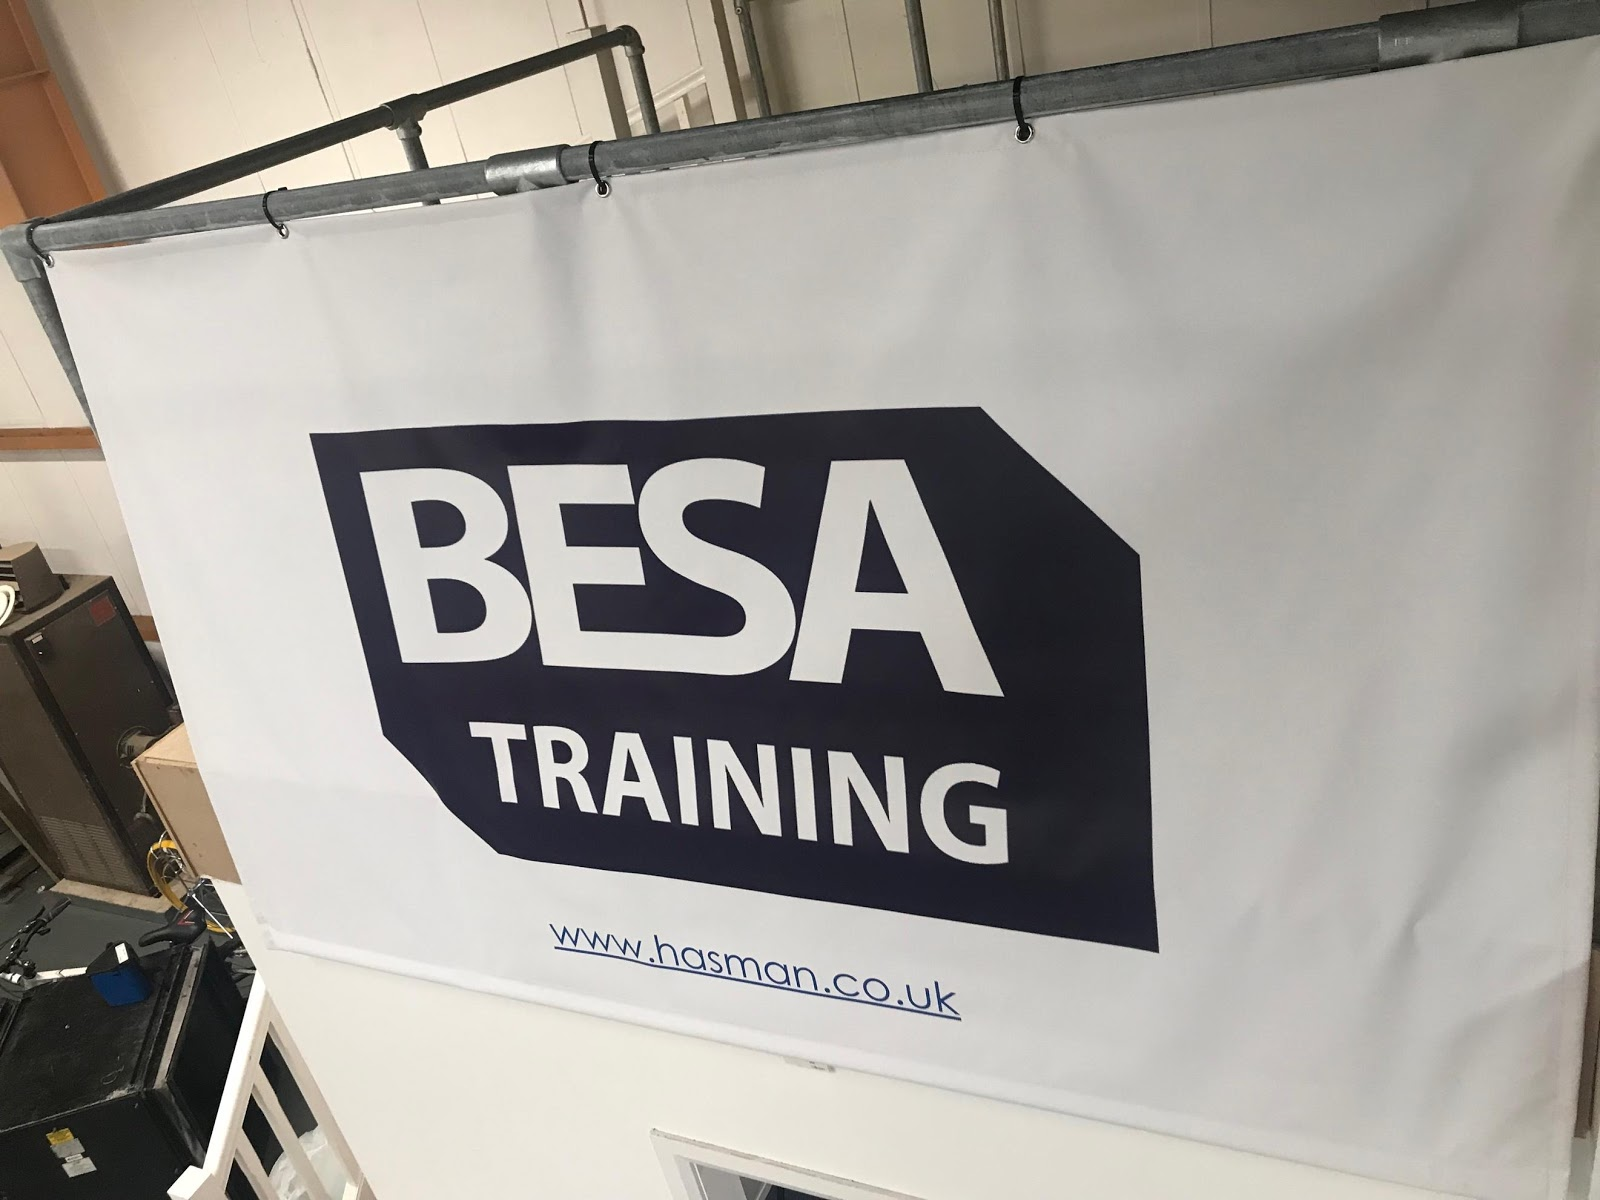 besa air hygiene